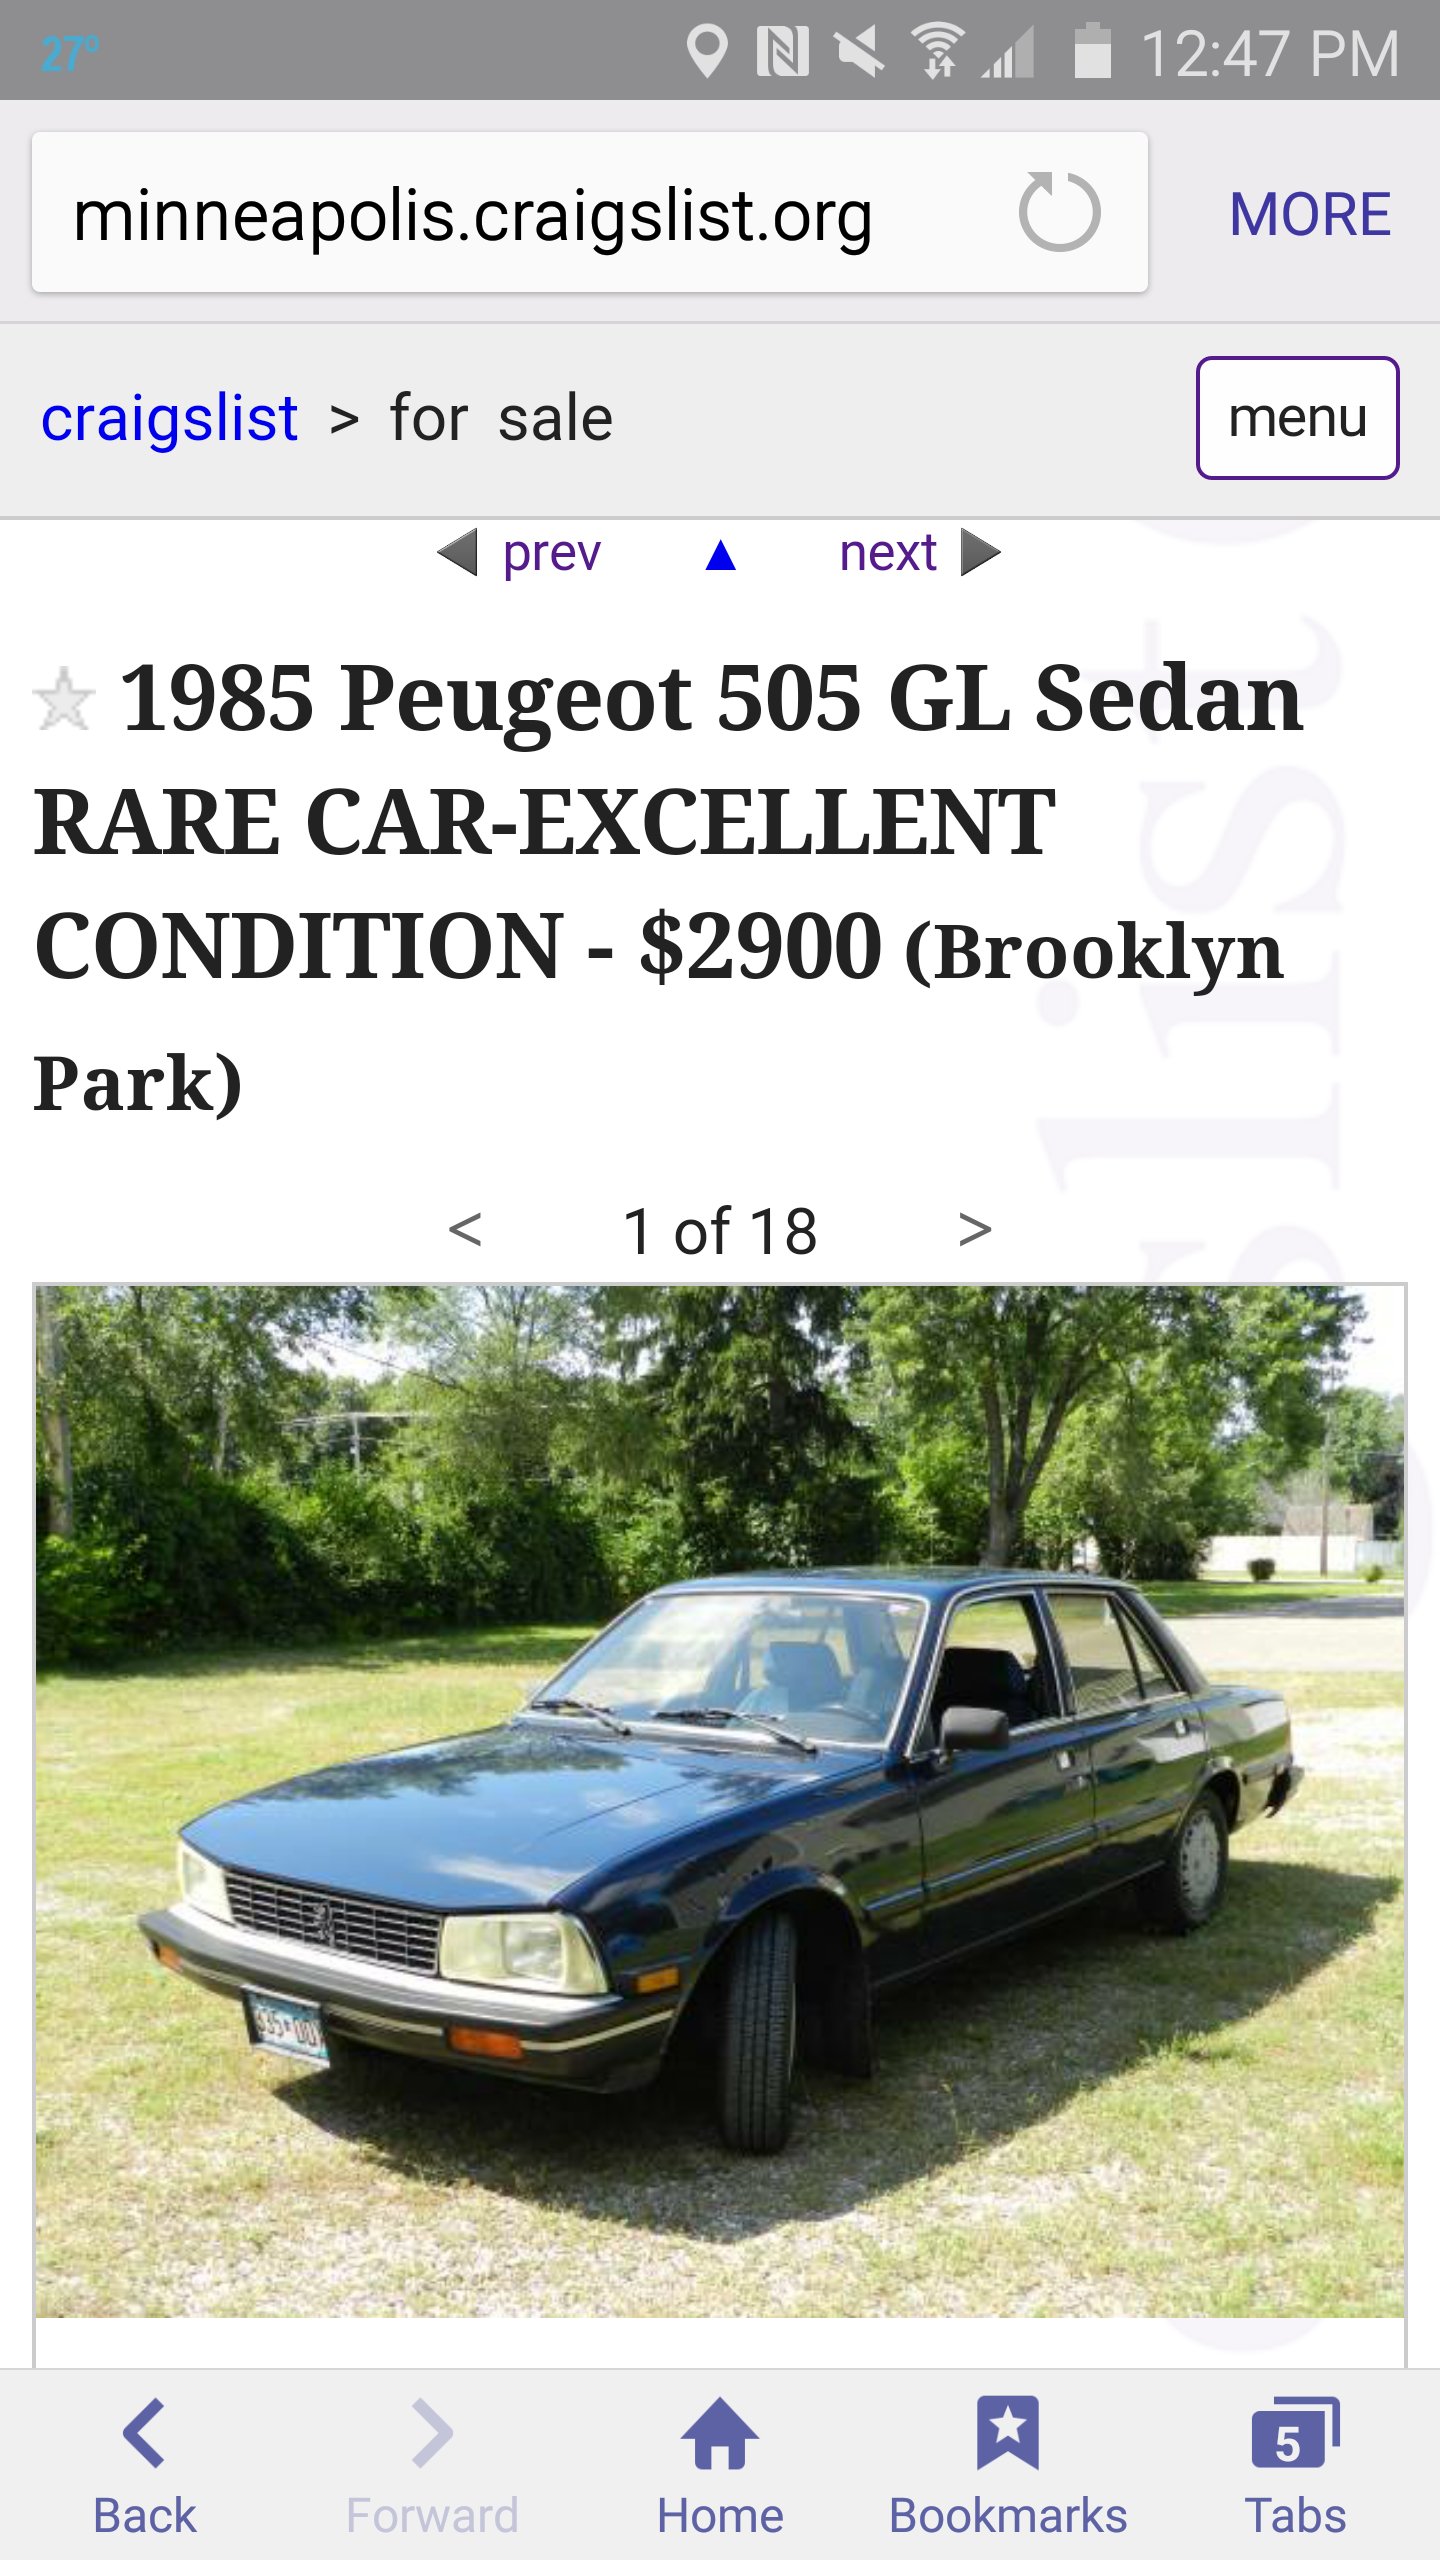 Had to do a double take seeing this on craigslist in ...